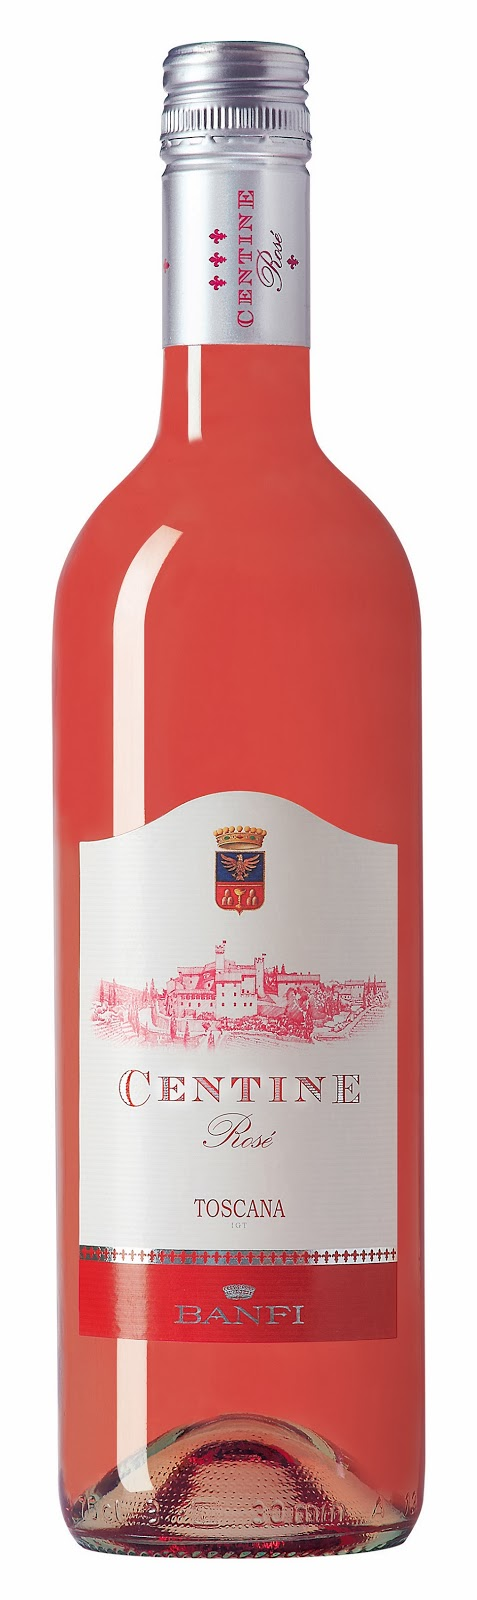 bottle of Centine Rose wine